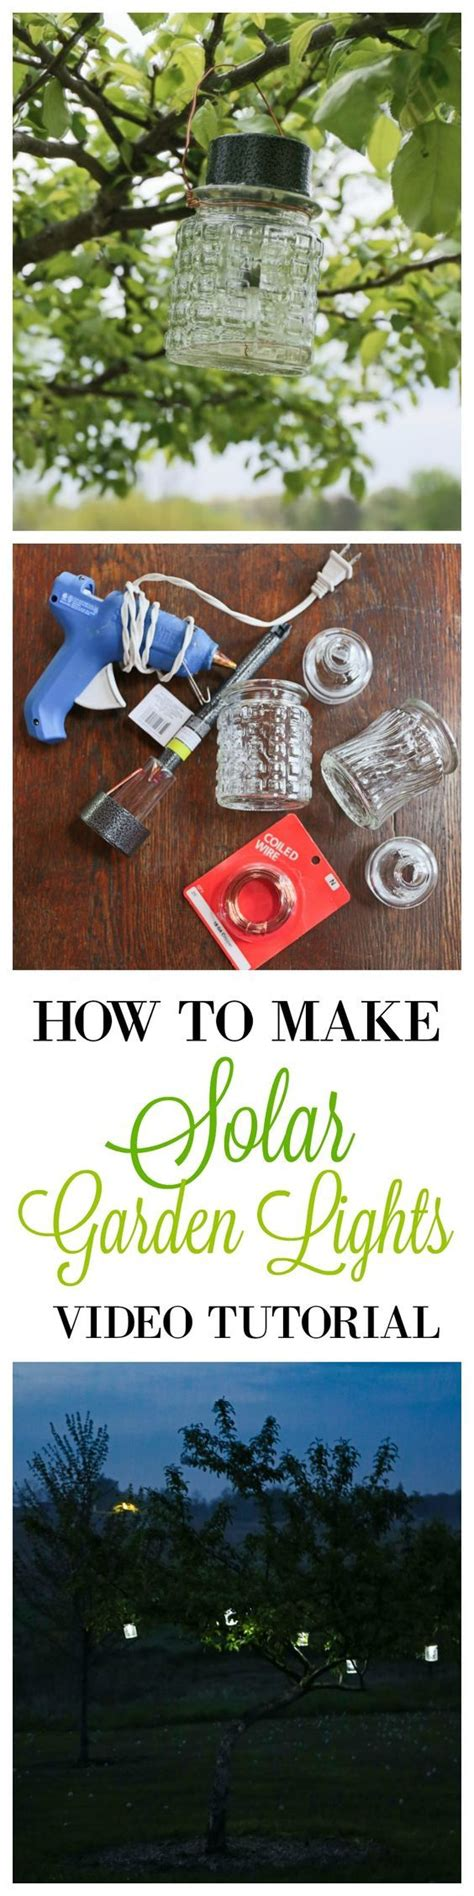 how to make solar powered lights bruhat solar lights blackhydraarmouries